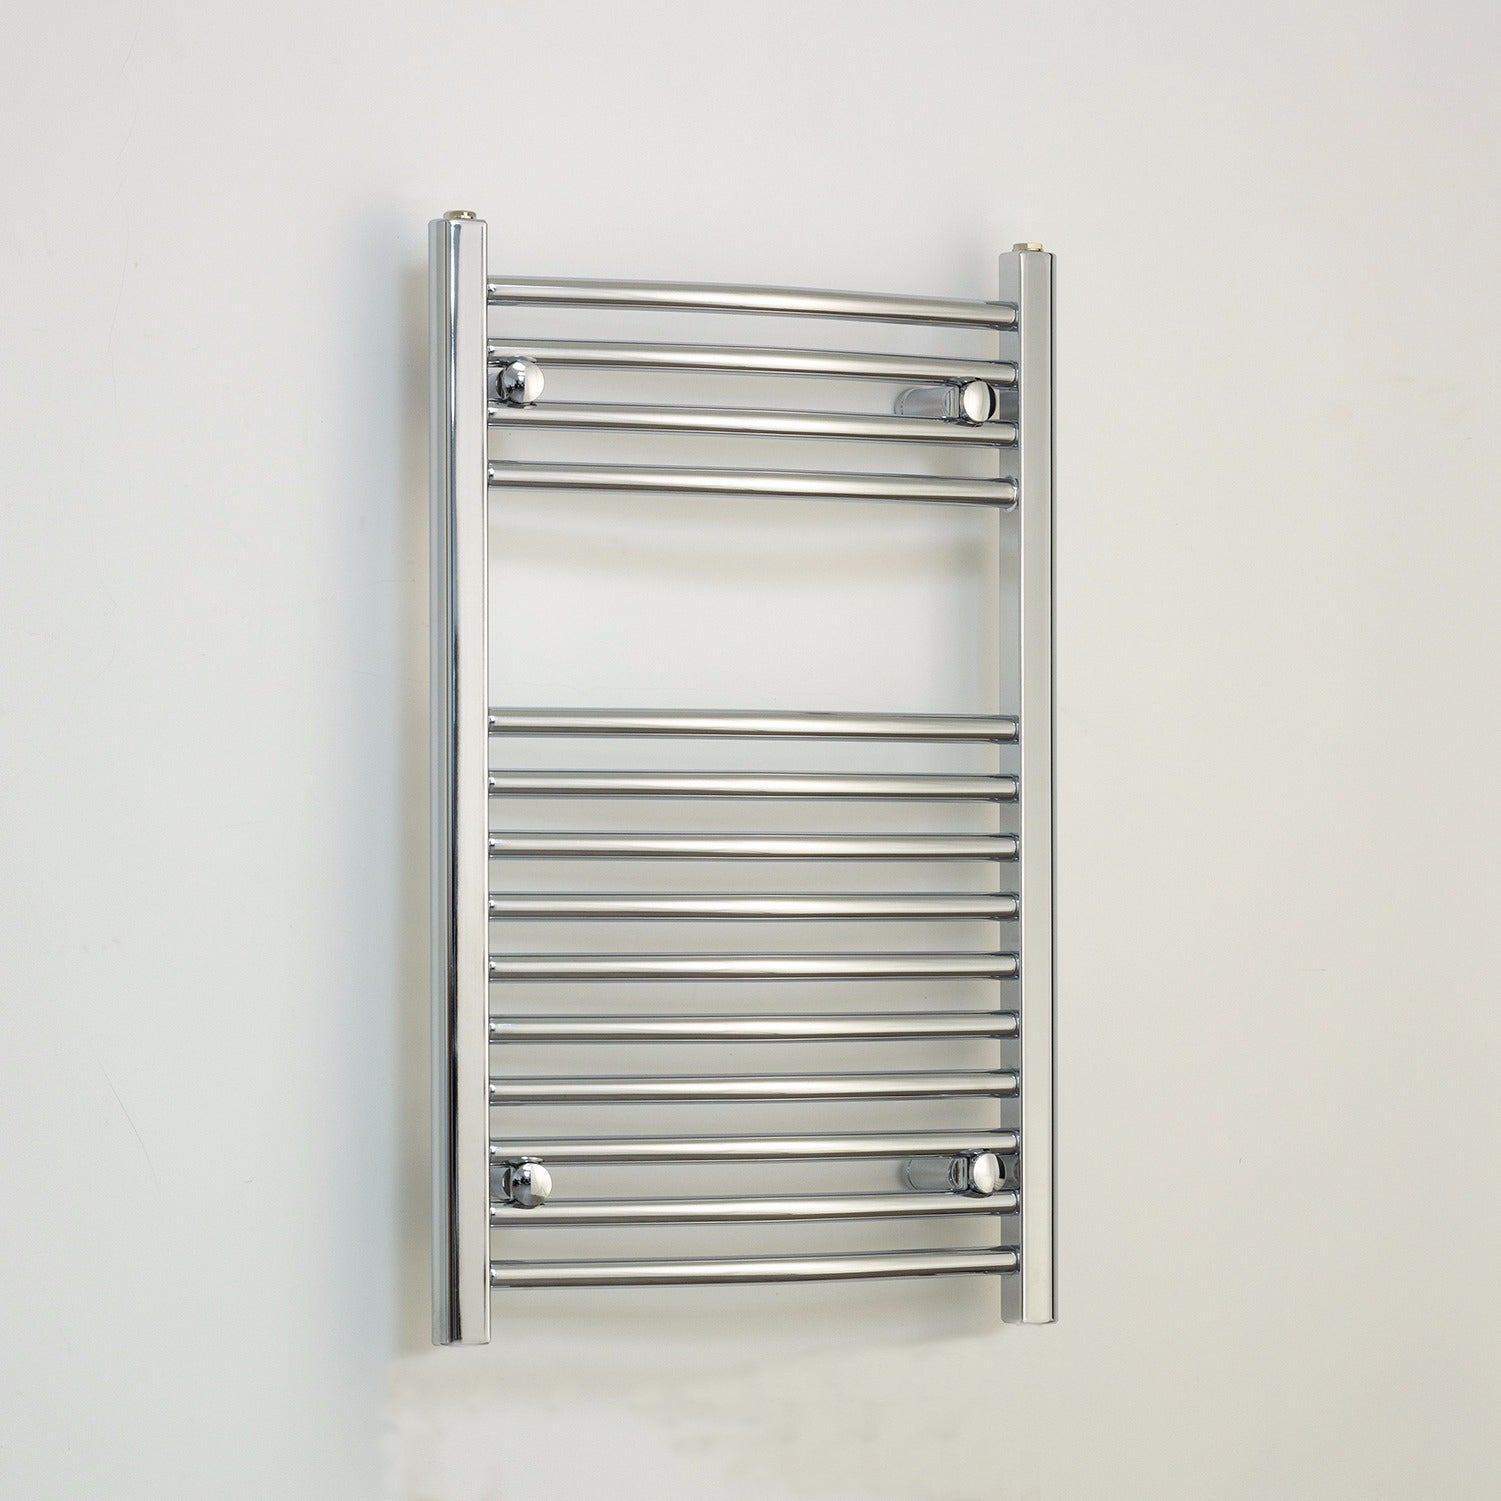 600mm Wide 800mm High Flat Chrome Heated Towel Rail Radiator HTR,Towel Rail Only